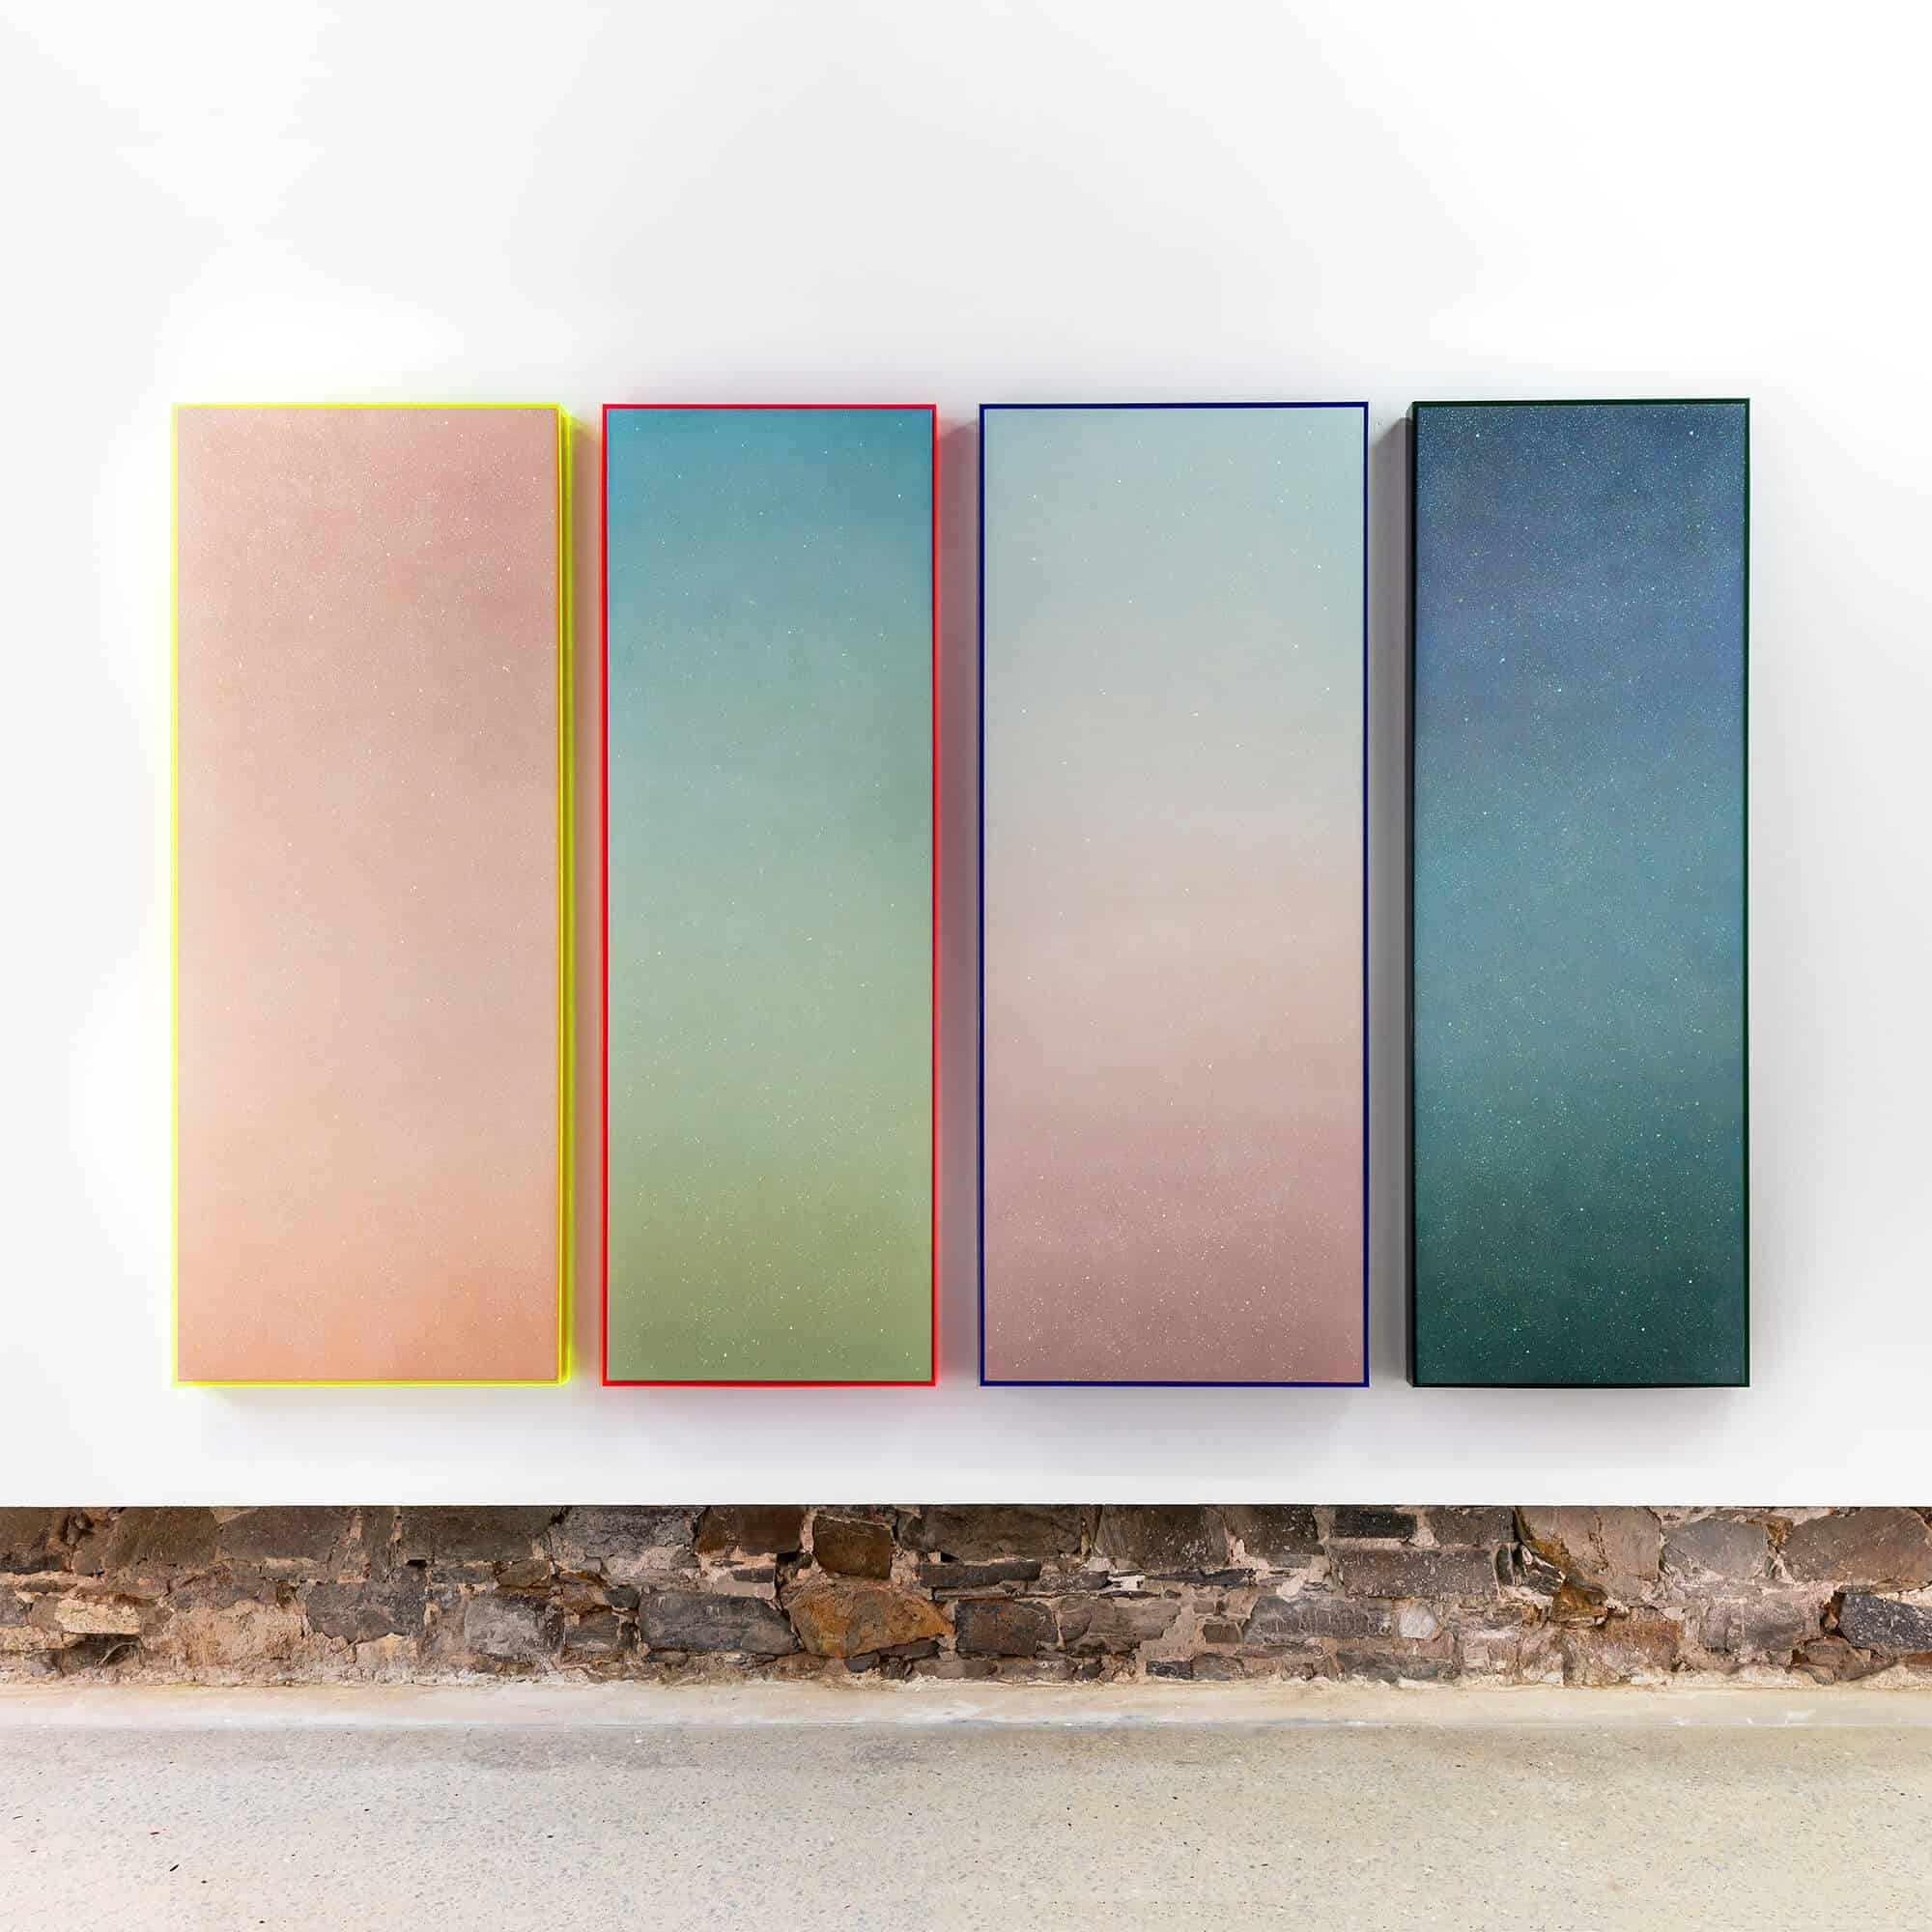 LEFT TO RIGHT: You know the feeling. You know the feeling?, II 2. You know the feeling. You know the feeling?, I 3. If you fall apart then I'm falling behind you 4. If you disappear then I'm disappearing too, 2020. Automotive paint and glitter glue on canvas, 182 x 62cm.